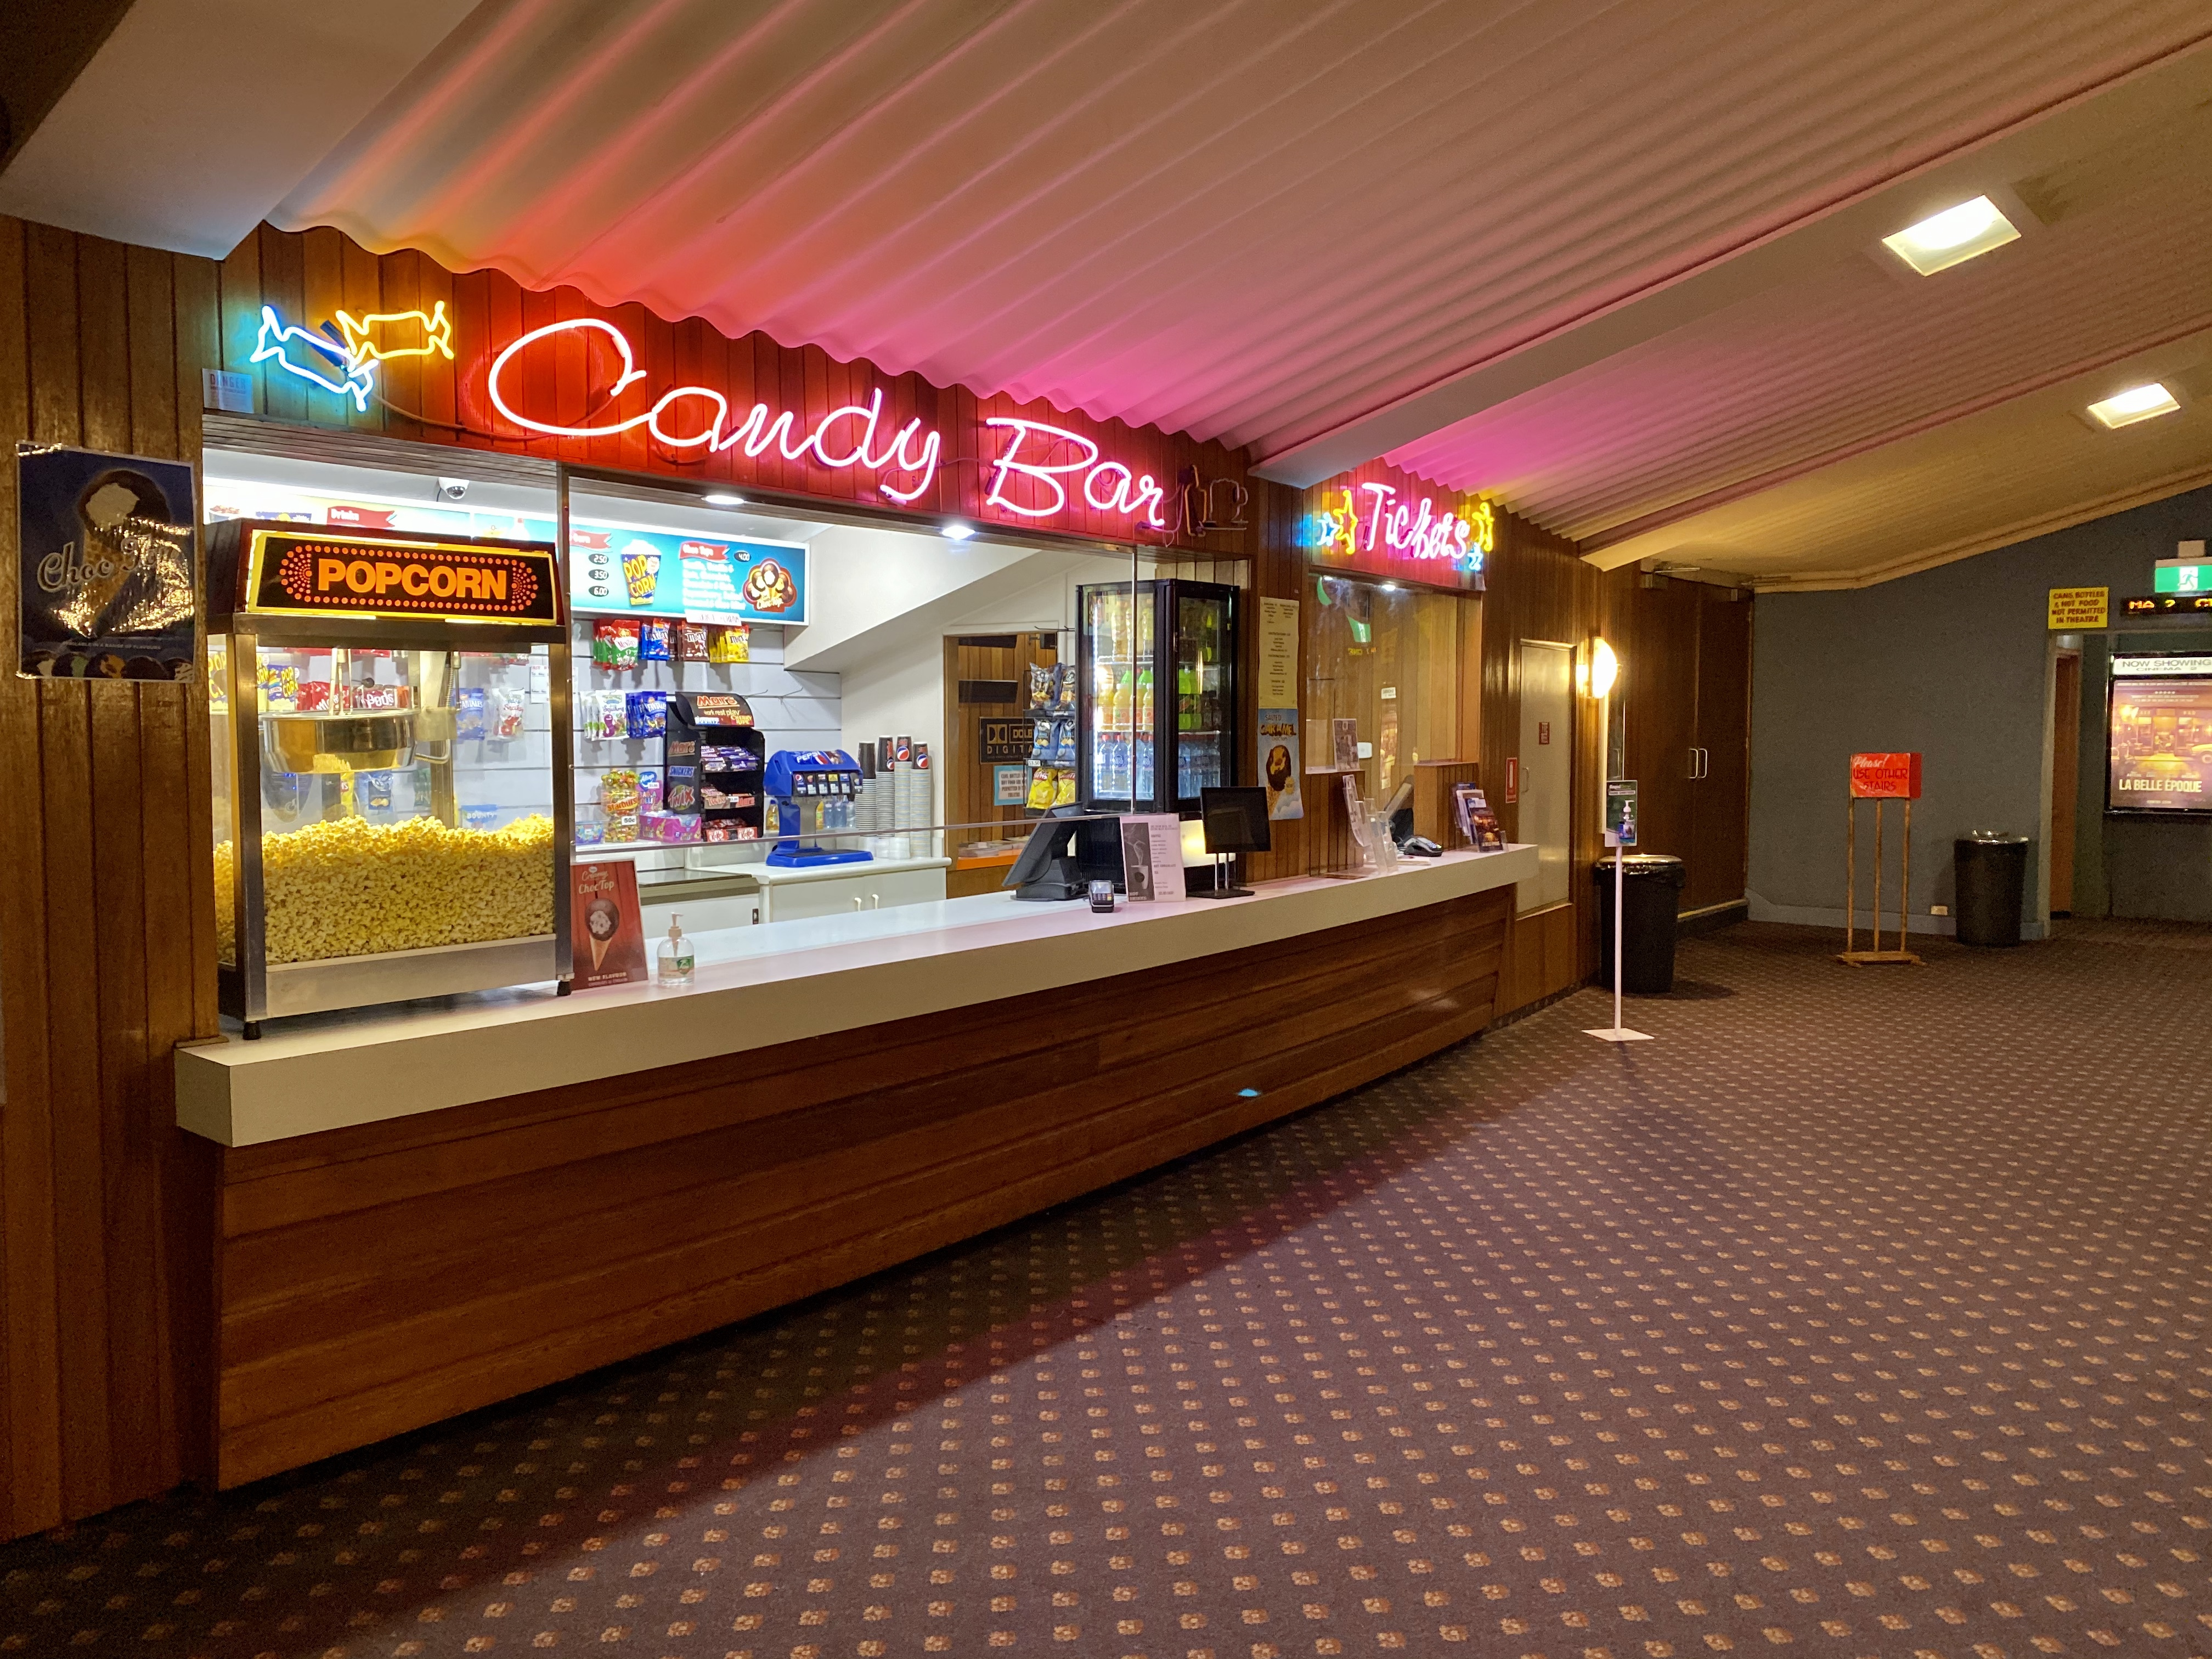 A counter with the sign candy bar and a popcorn machine under a sloping corrugated metal ceiling